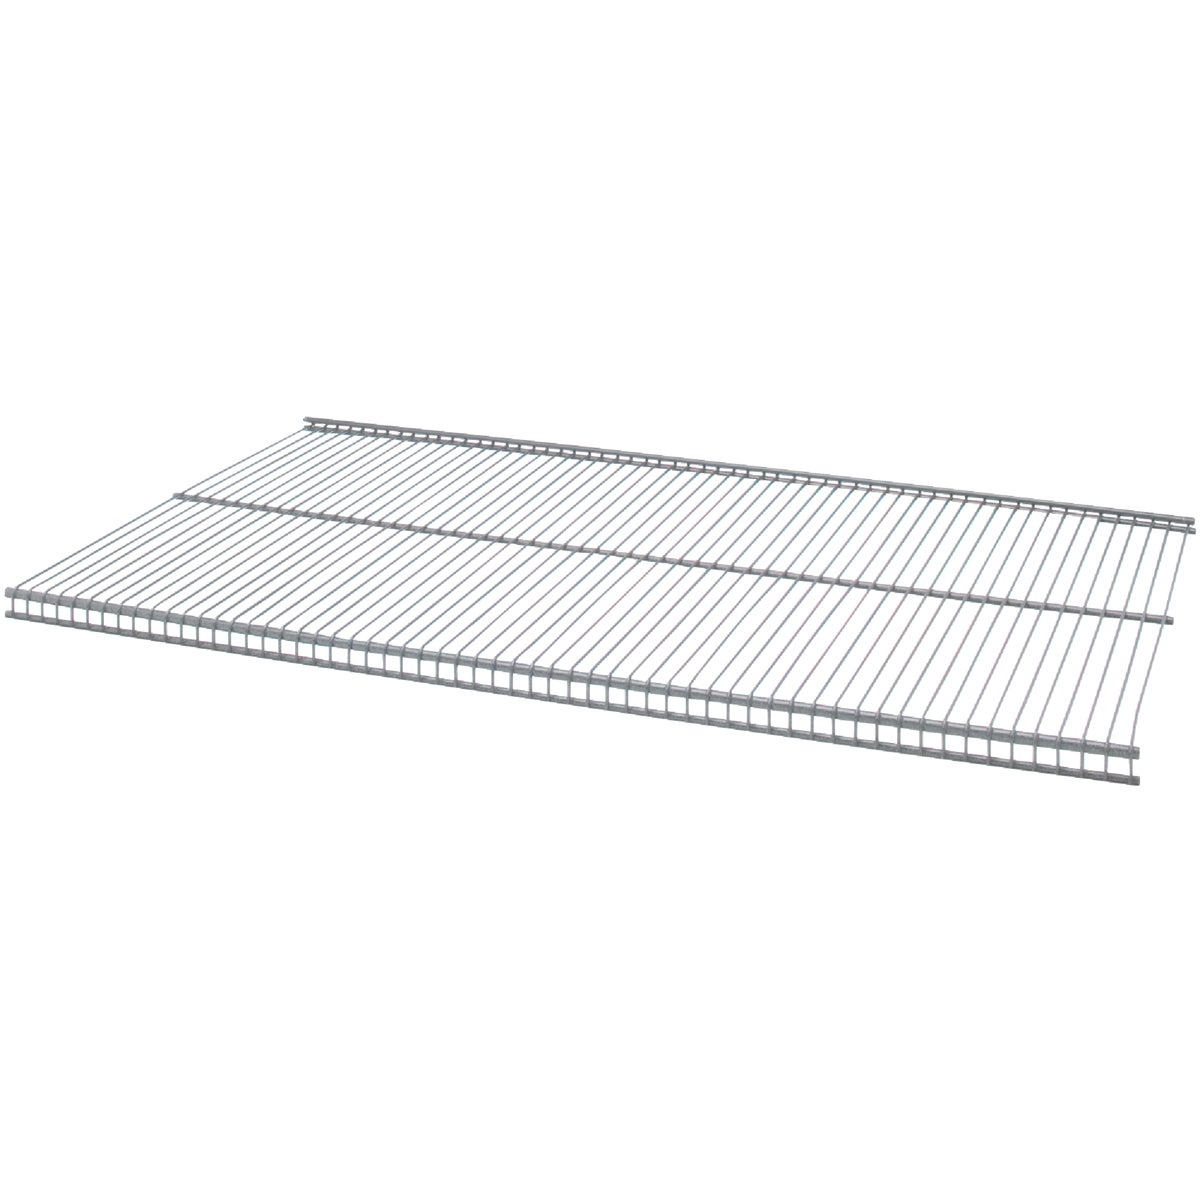 12X30 NKL PROFILE SHELF - 1813123045 by Schulte Corp